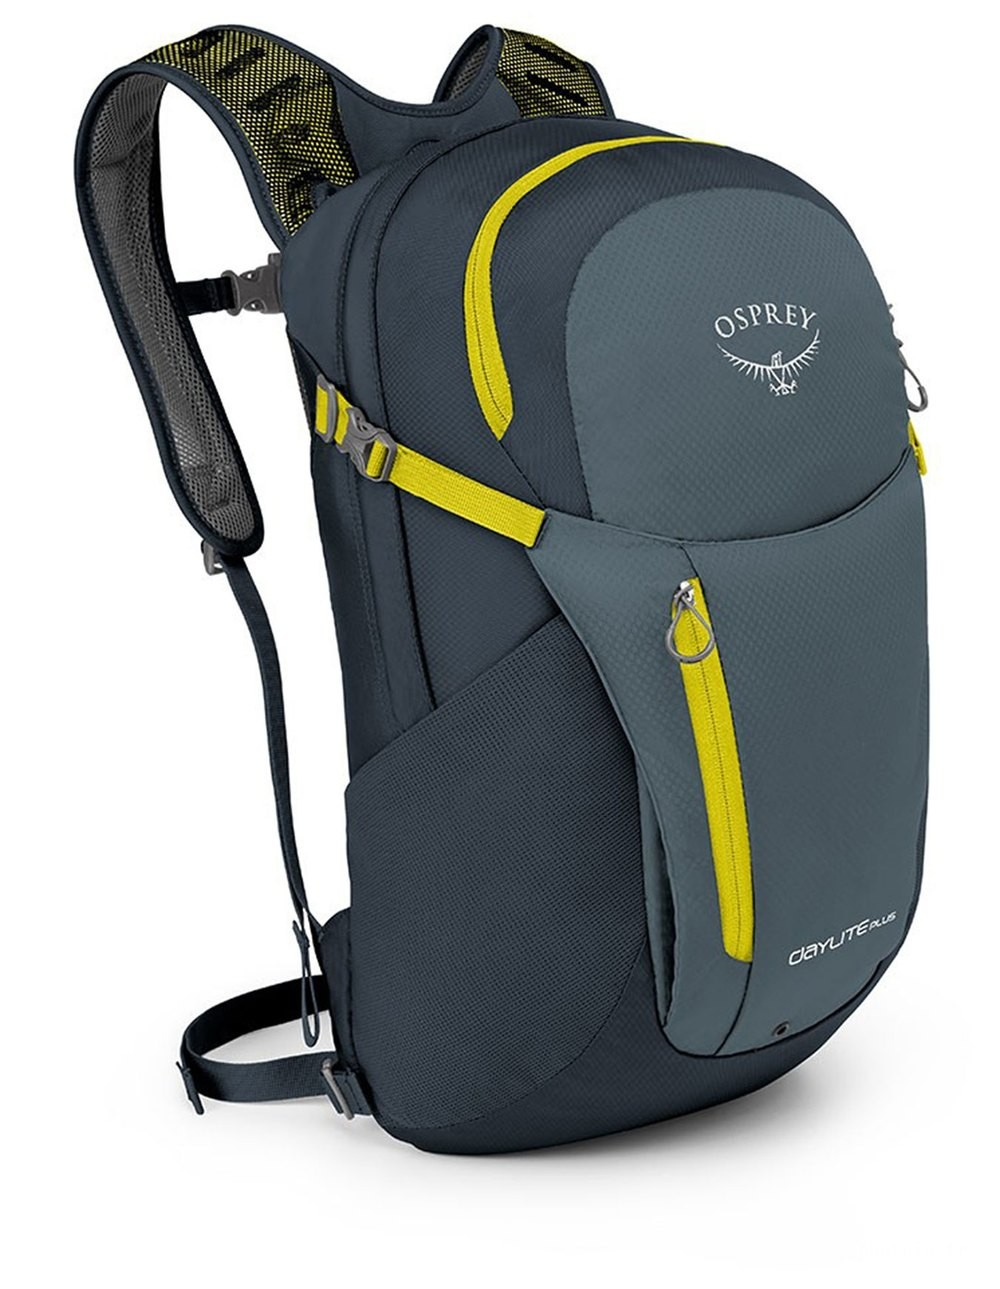 [BLACK FRIDAY] Osprey Sac à dos - Daylite Plus Stone Grey - 2017/18